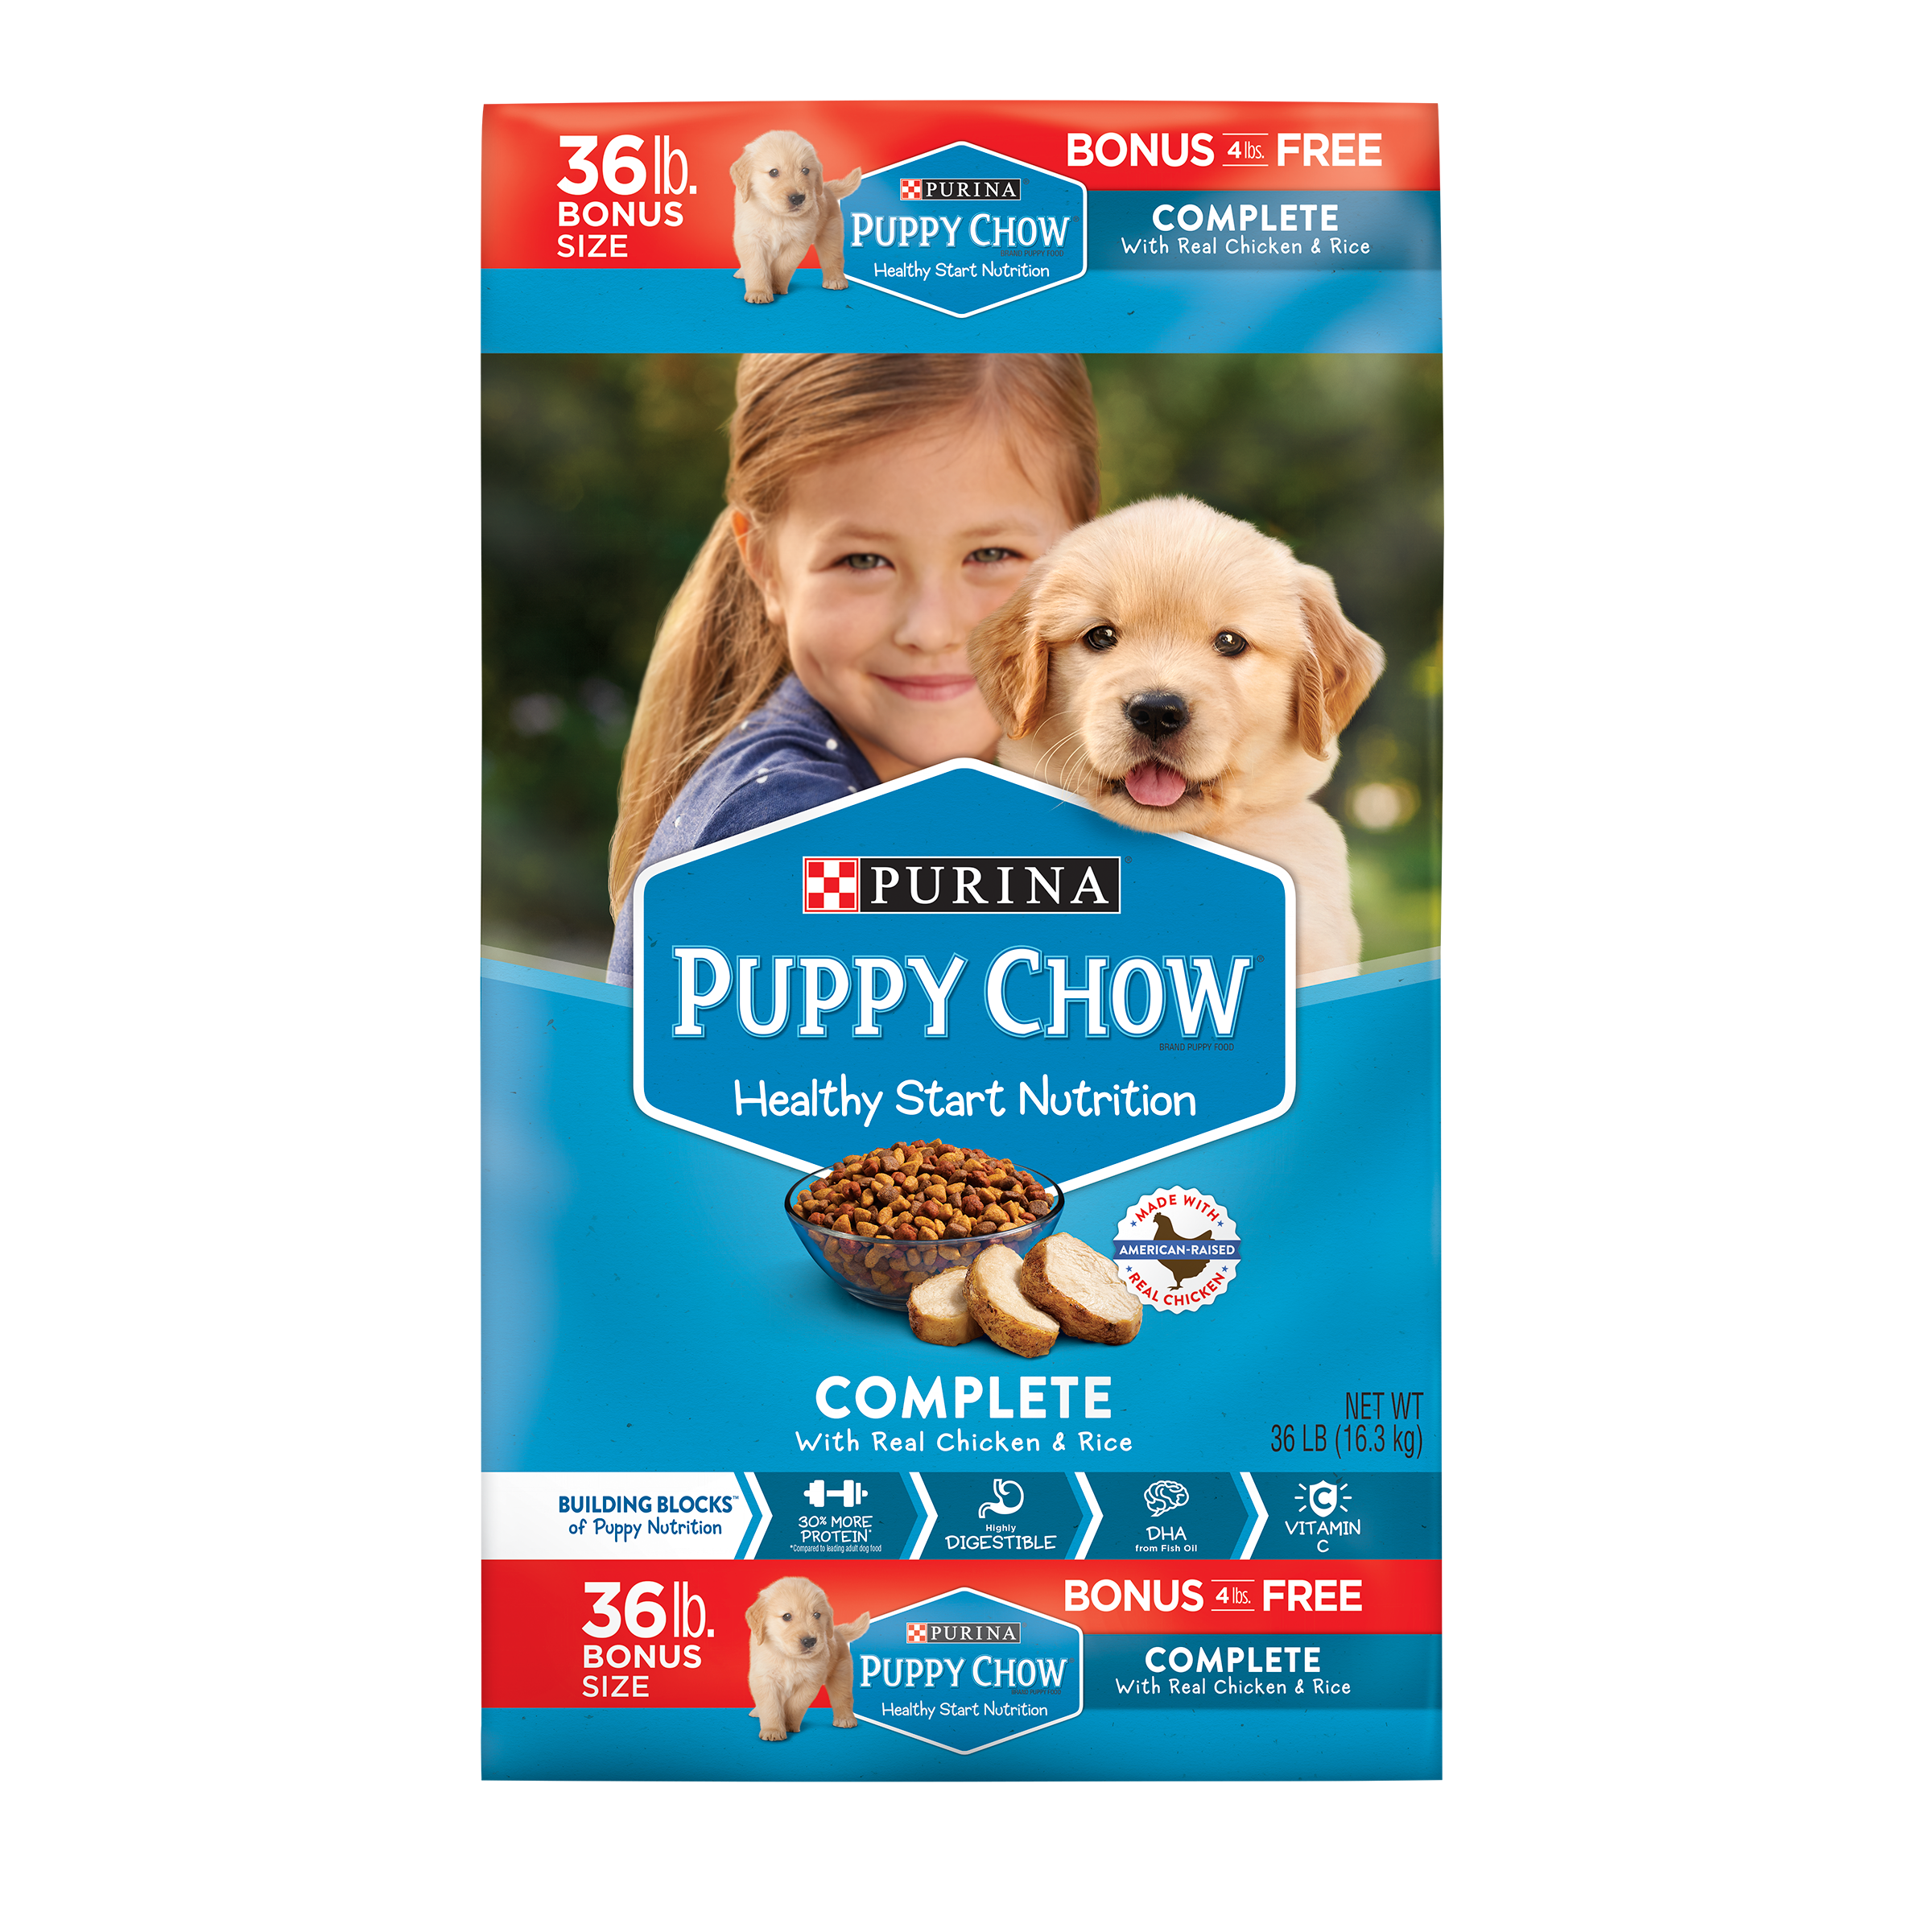 Purina Puppy Chow High Protein Dry Puppy Food; Complete With Real Chicken - 36 lb. Bag